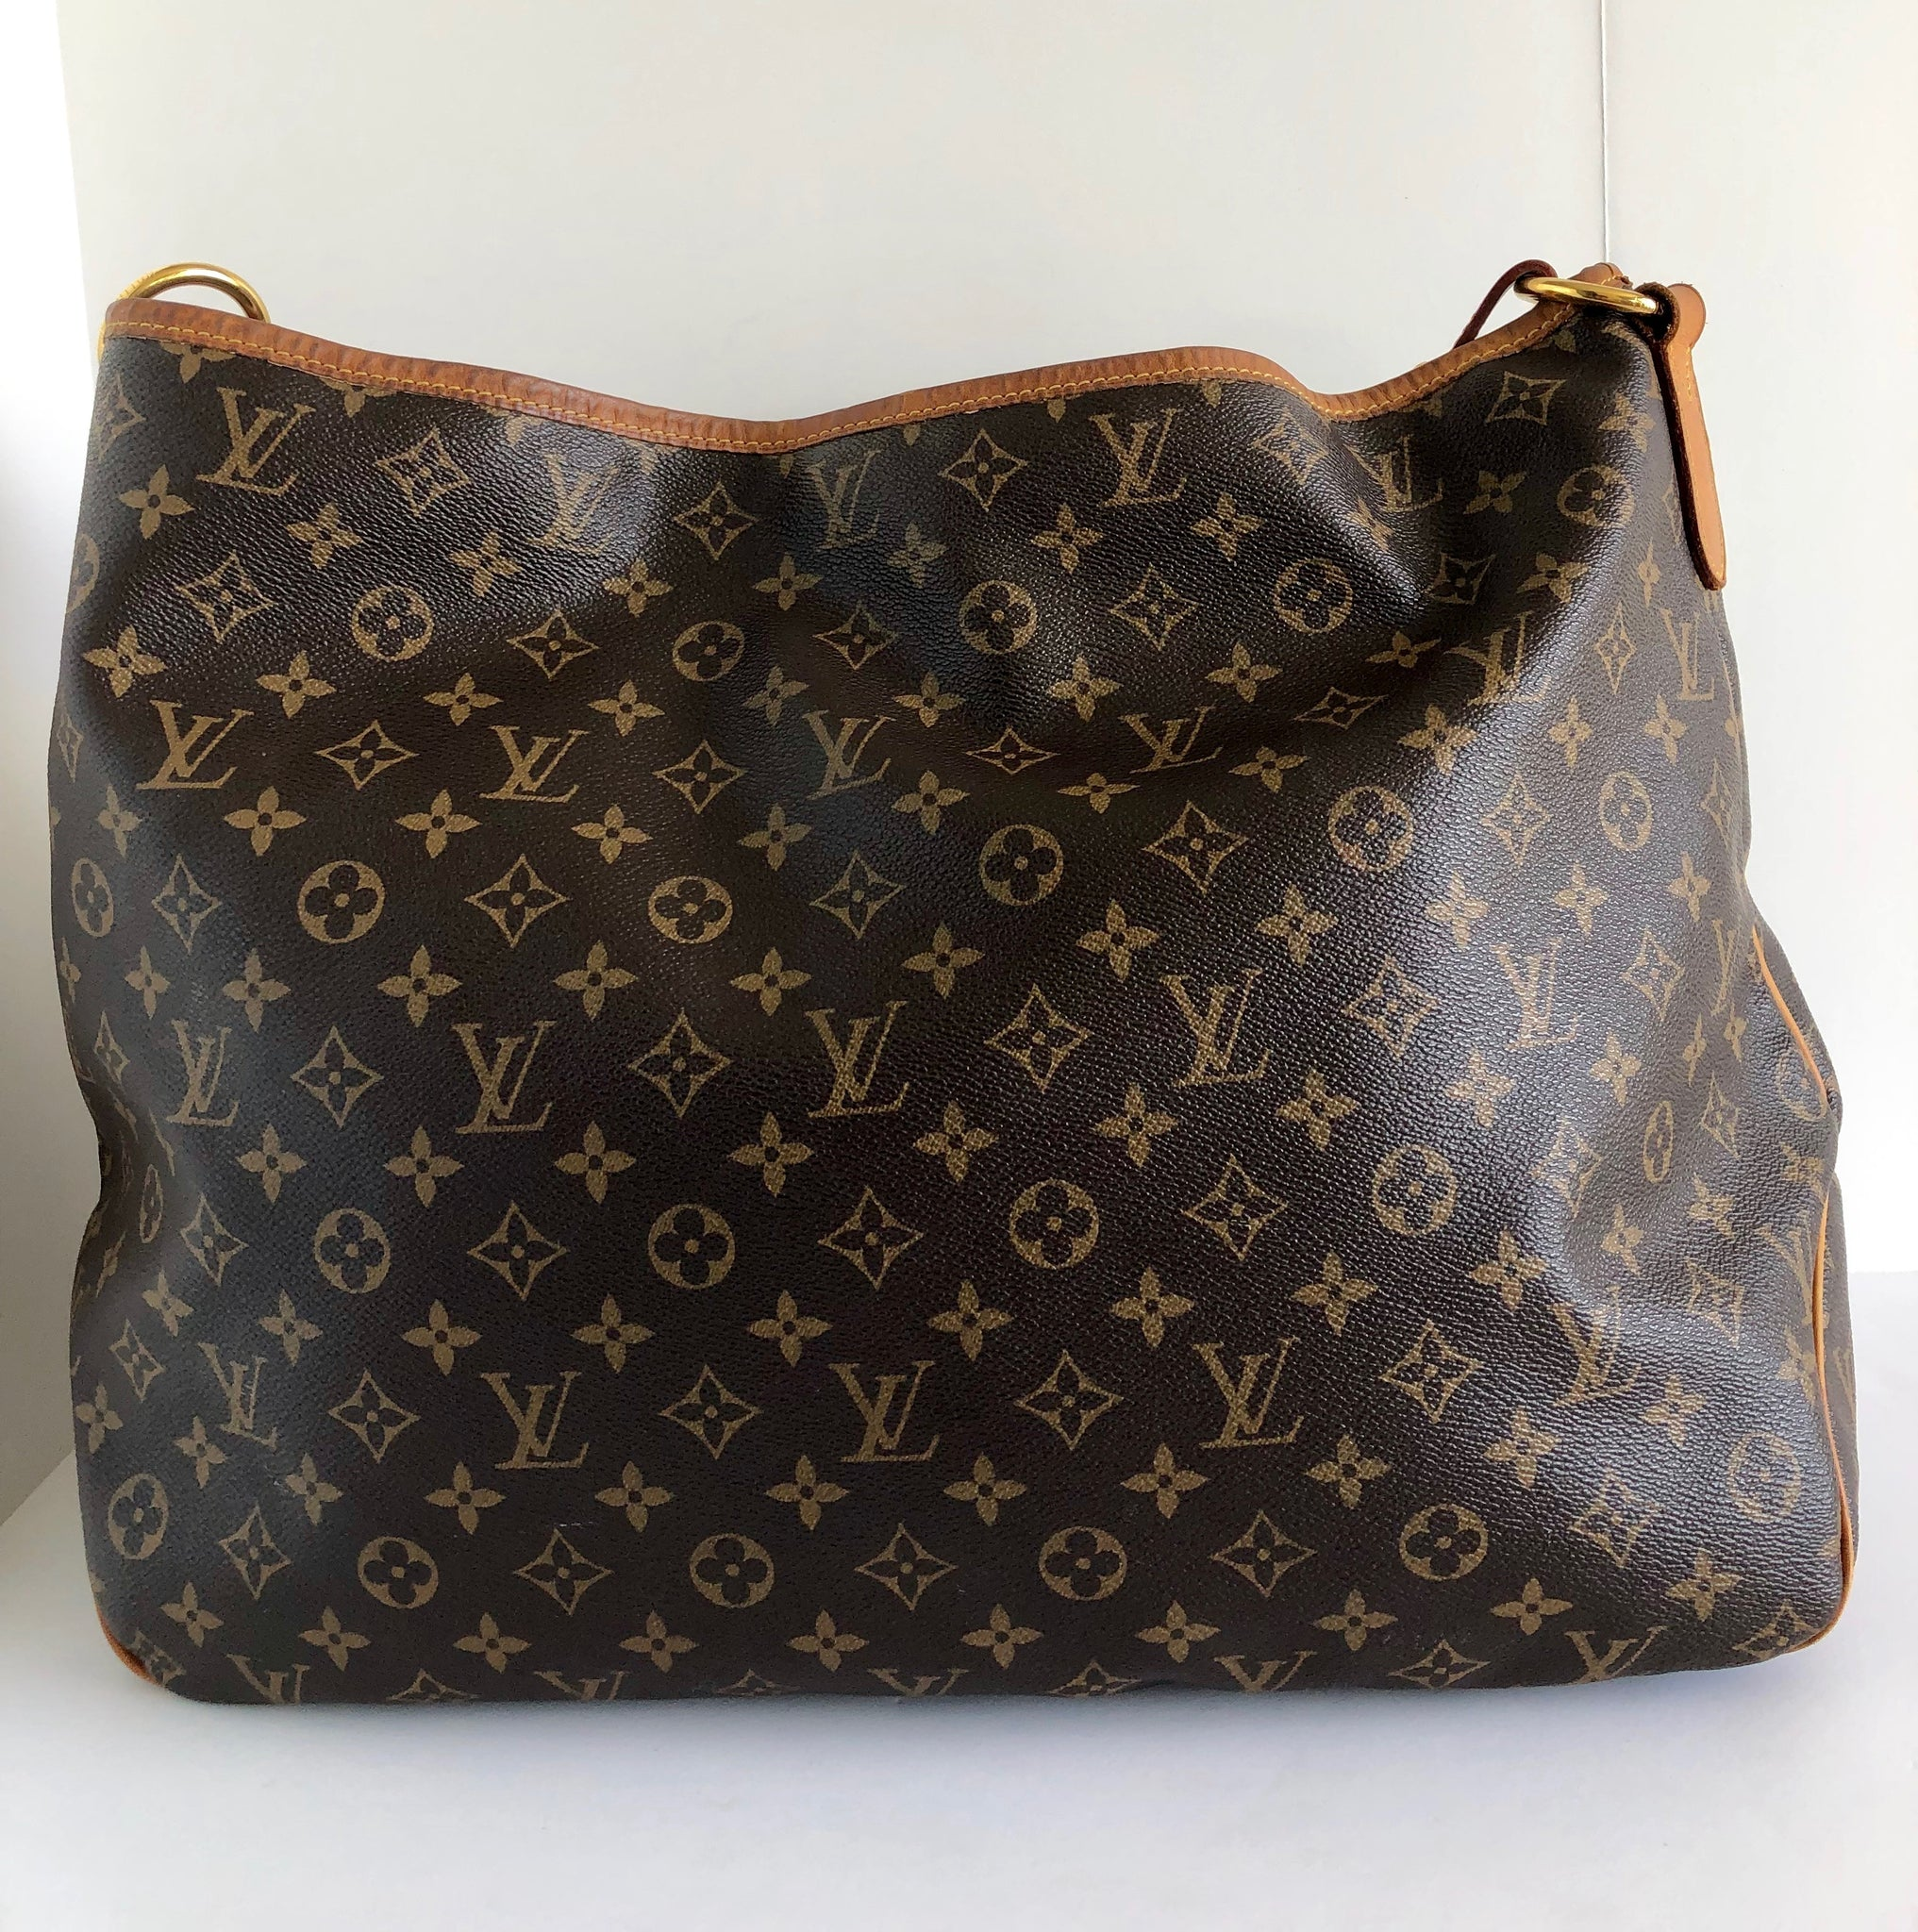 5c29c9d05 ... Load image into Gallery viewer, LOUIS VUITTON Delightful Gm Large  Monogram Canvas Hobo Shoulder Bag ...